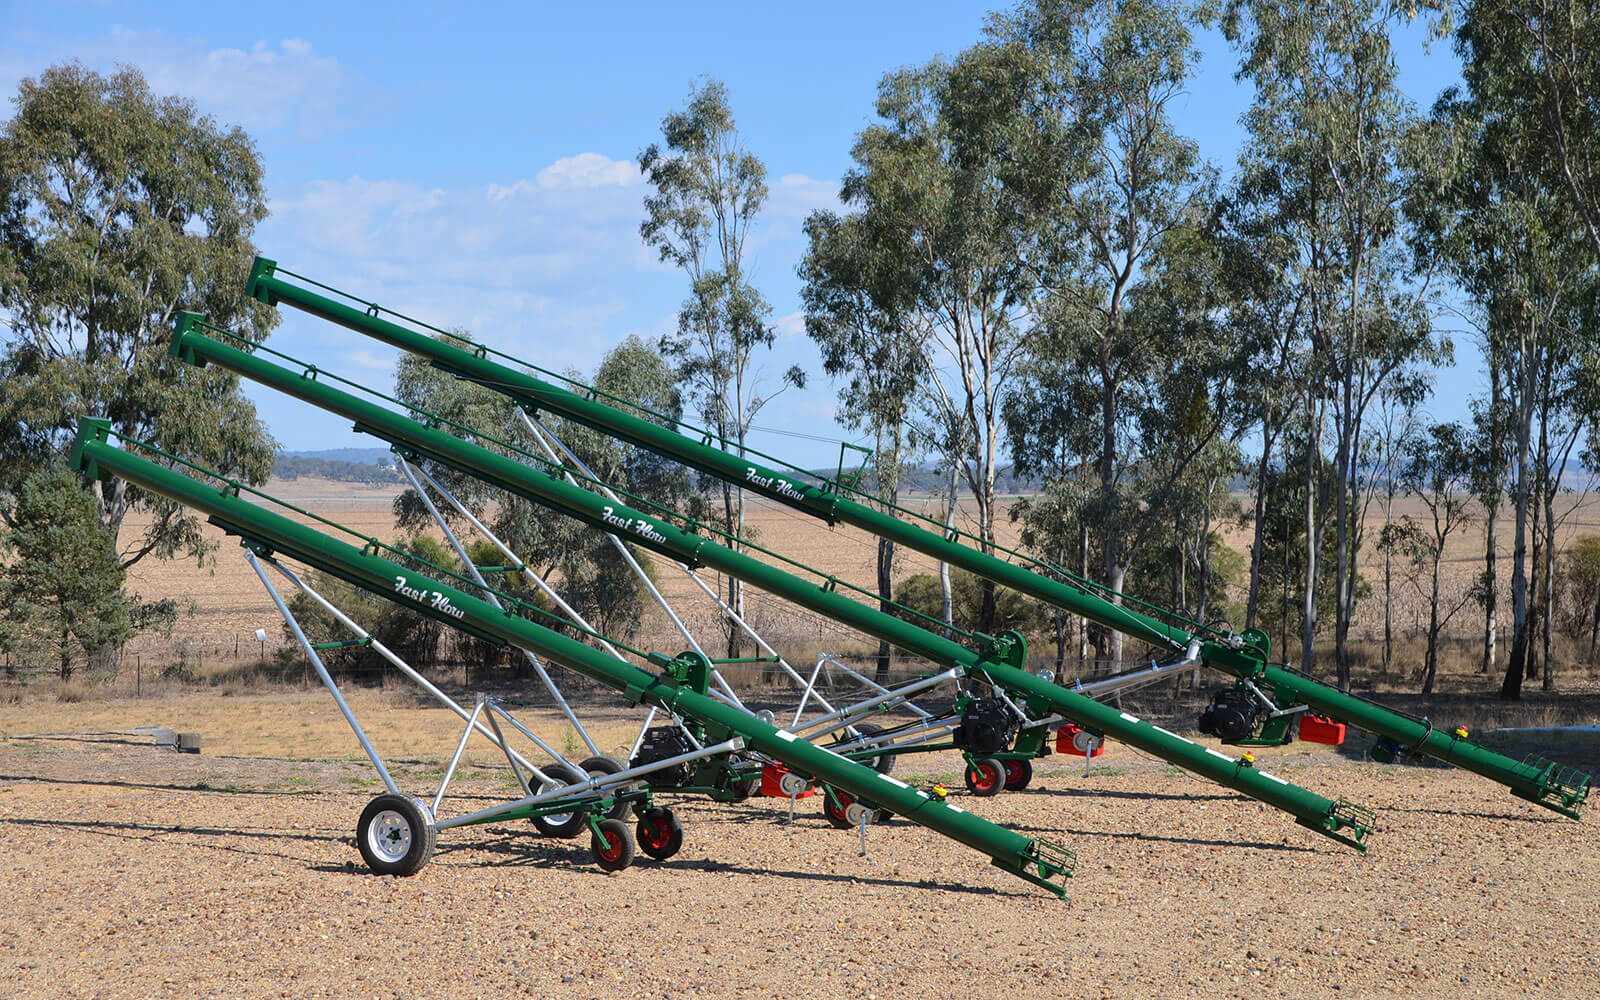 Three FF augers